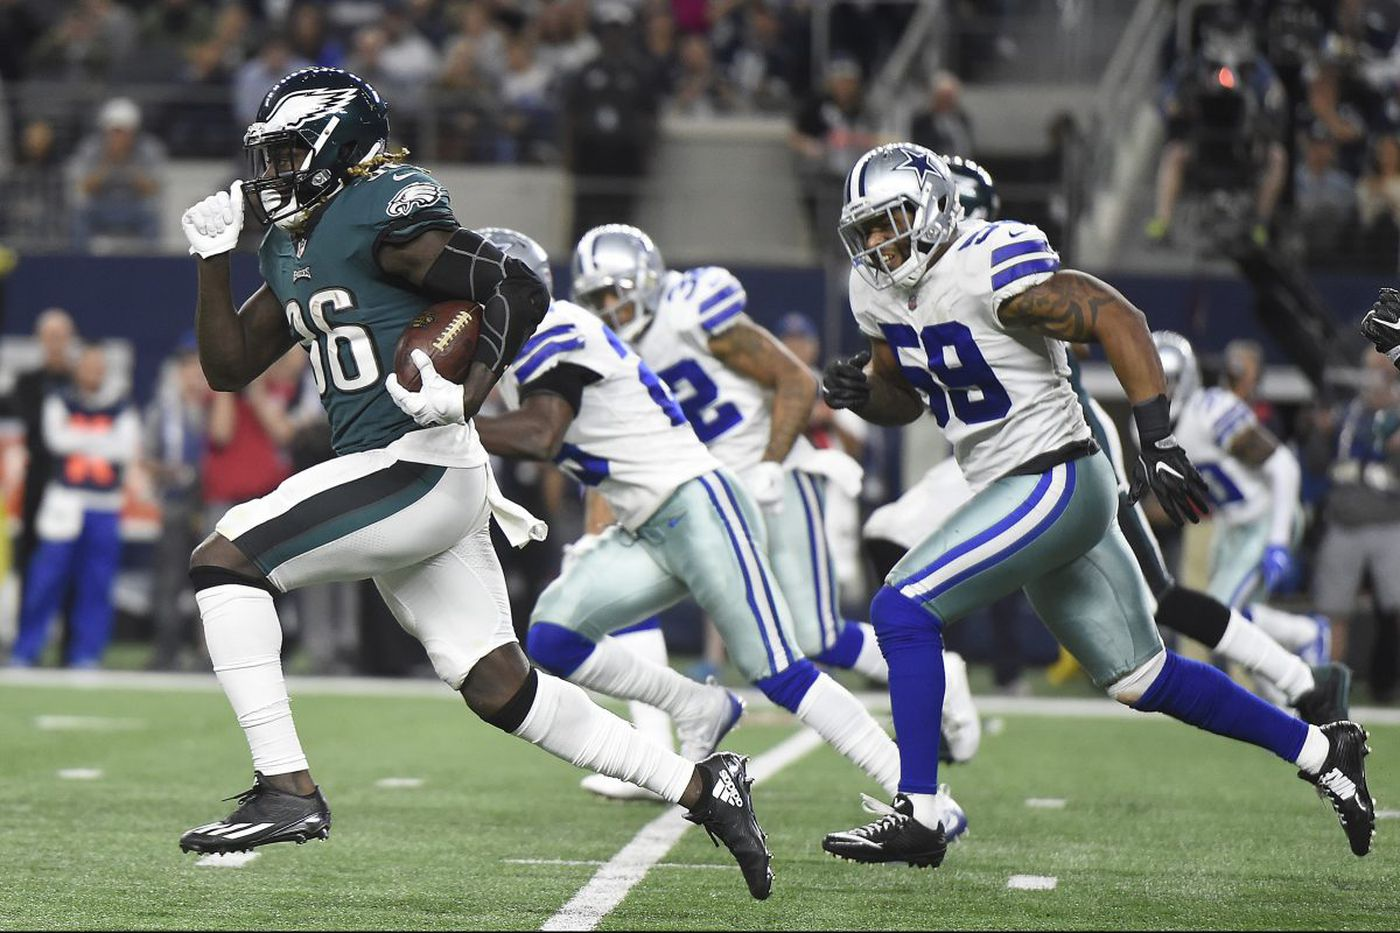 Five reasons the Eagles beat the Cowboys | Paul Domowitch